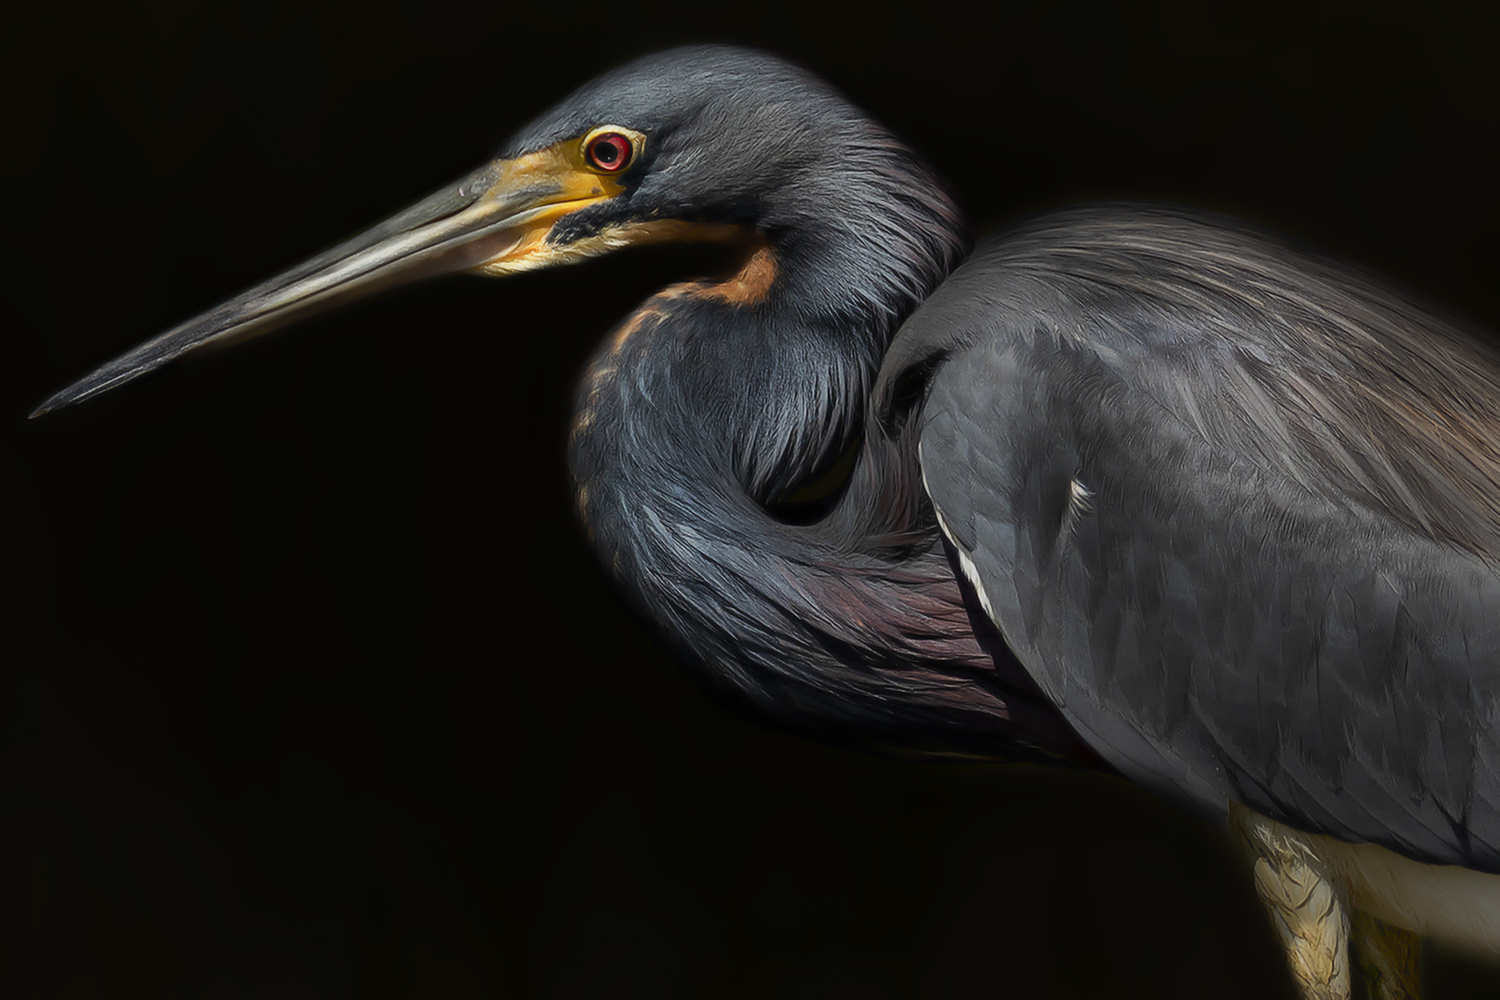 Tricolored Heron by David Boardman